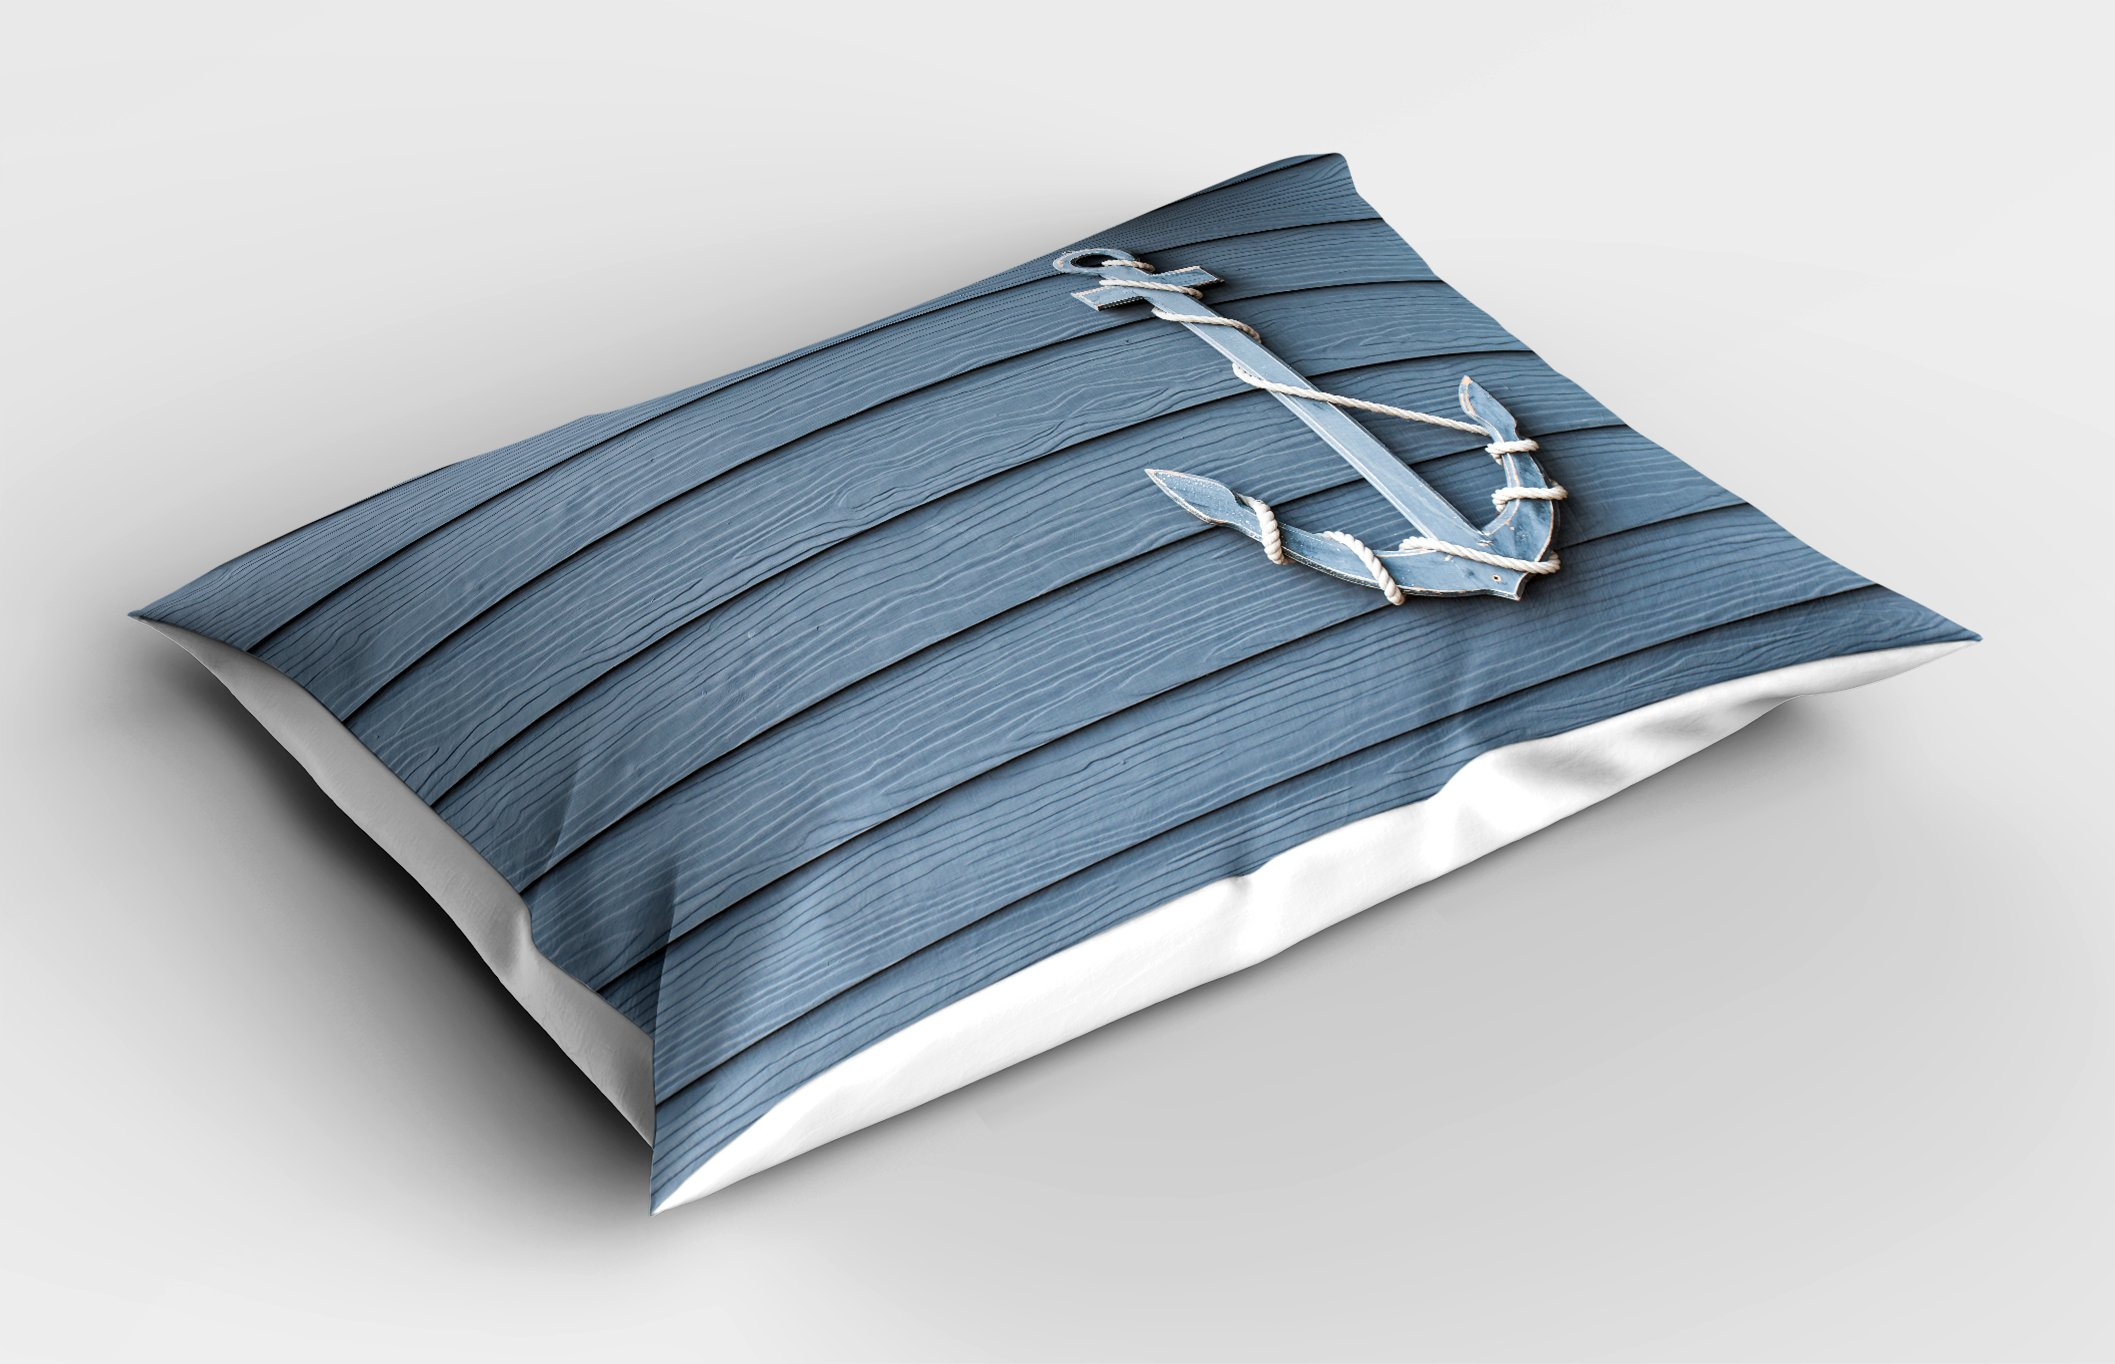 Ambesonne Nautical Decor Pillow Sham by, Anchor with Marine Rope on Wood Background Sea Ocean Life Coast Cruise Theme, Decorative Standard Size Printed Pillowcase, 26 X 20 Inches, Blue Grey by Ambesonne (Image #2)